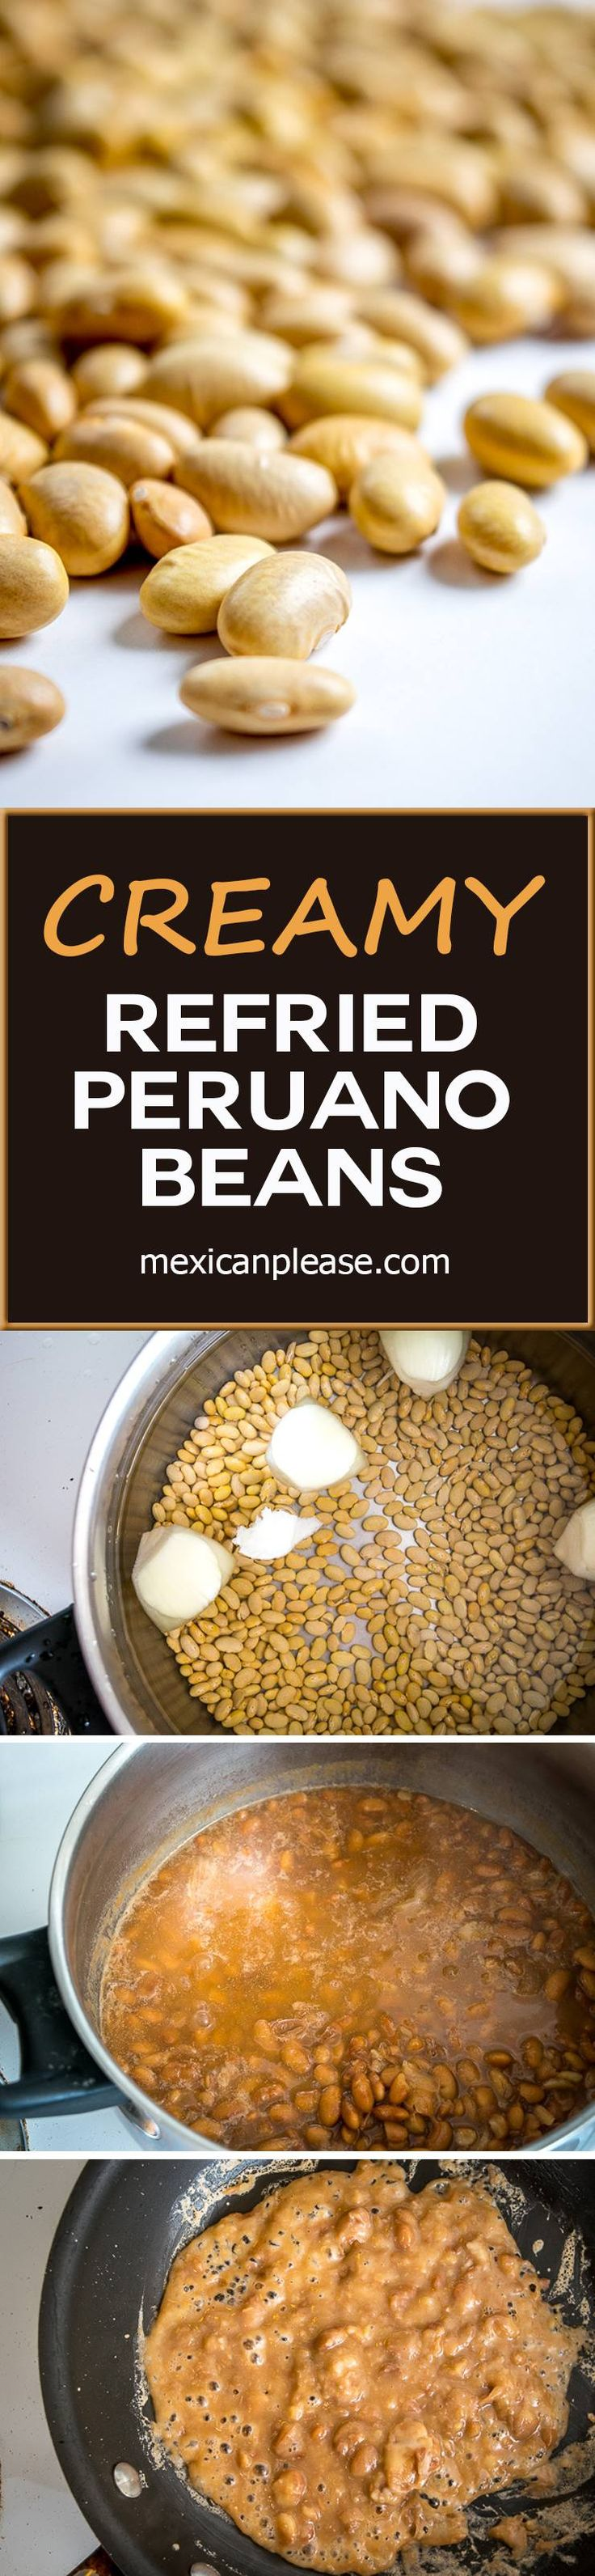 Once you try refried beans using Peruano beans you might never go back to Pinto beans!  Creamy, delicious, and easy to make!  mexicanplease.com